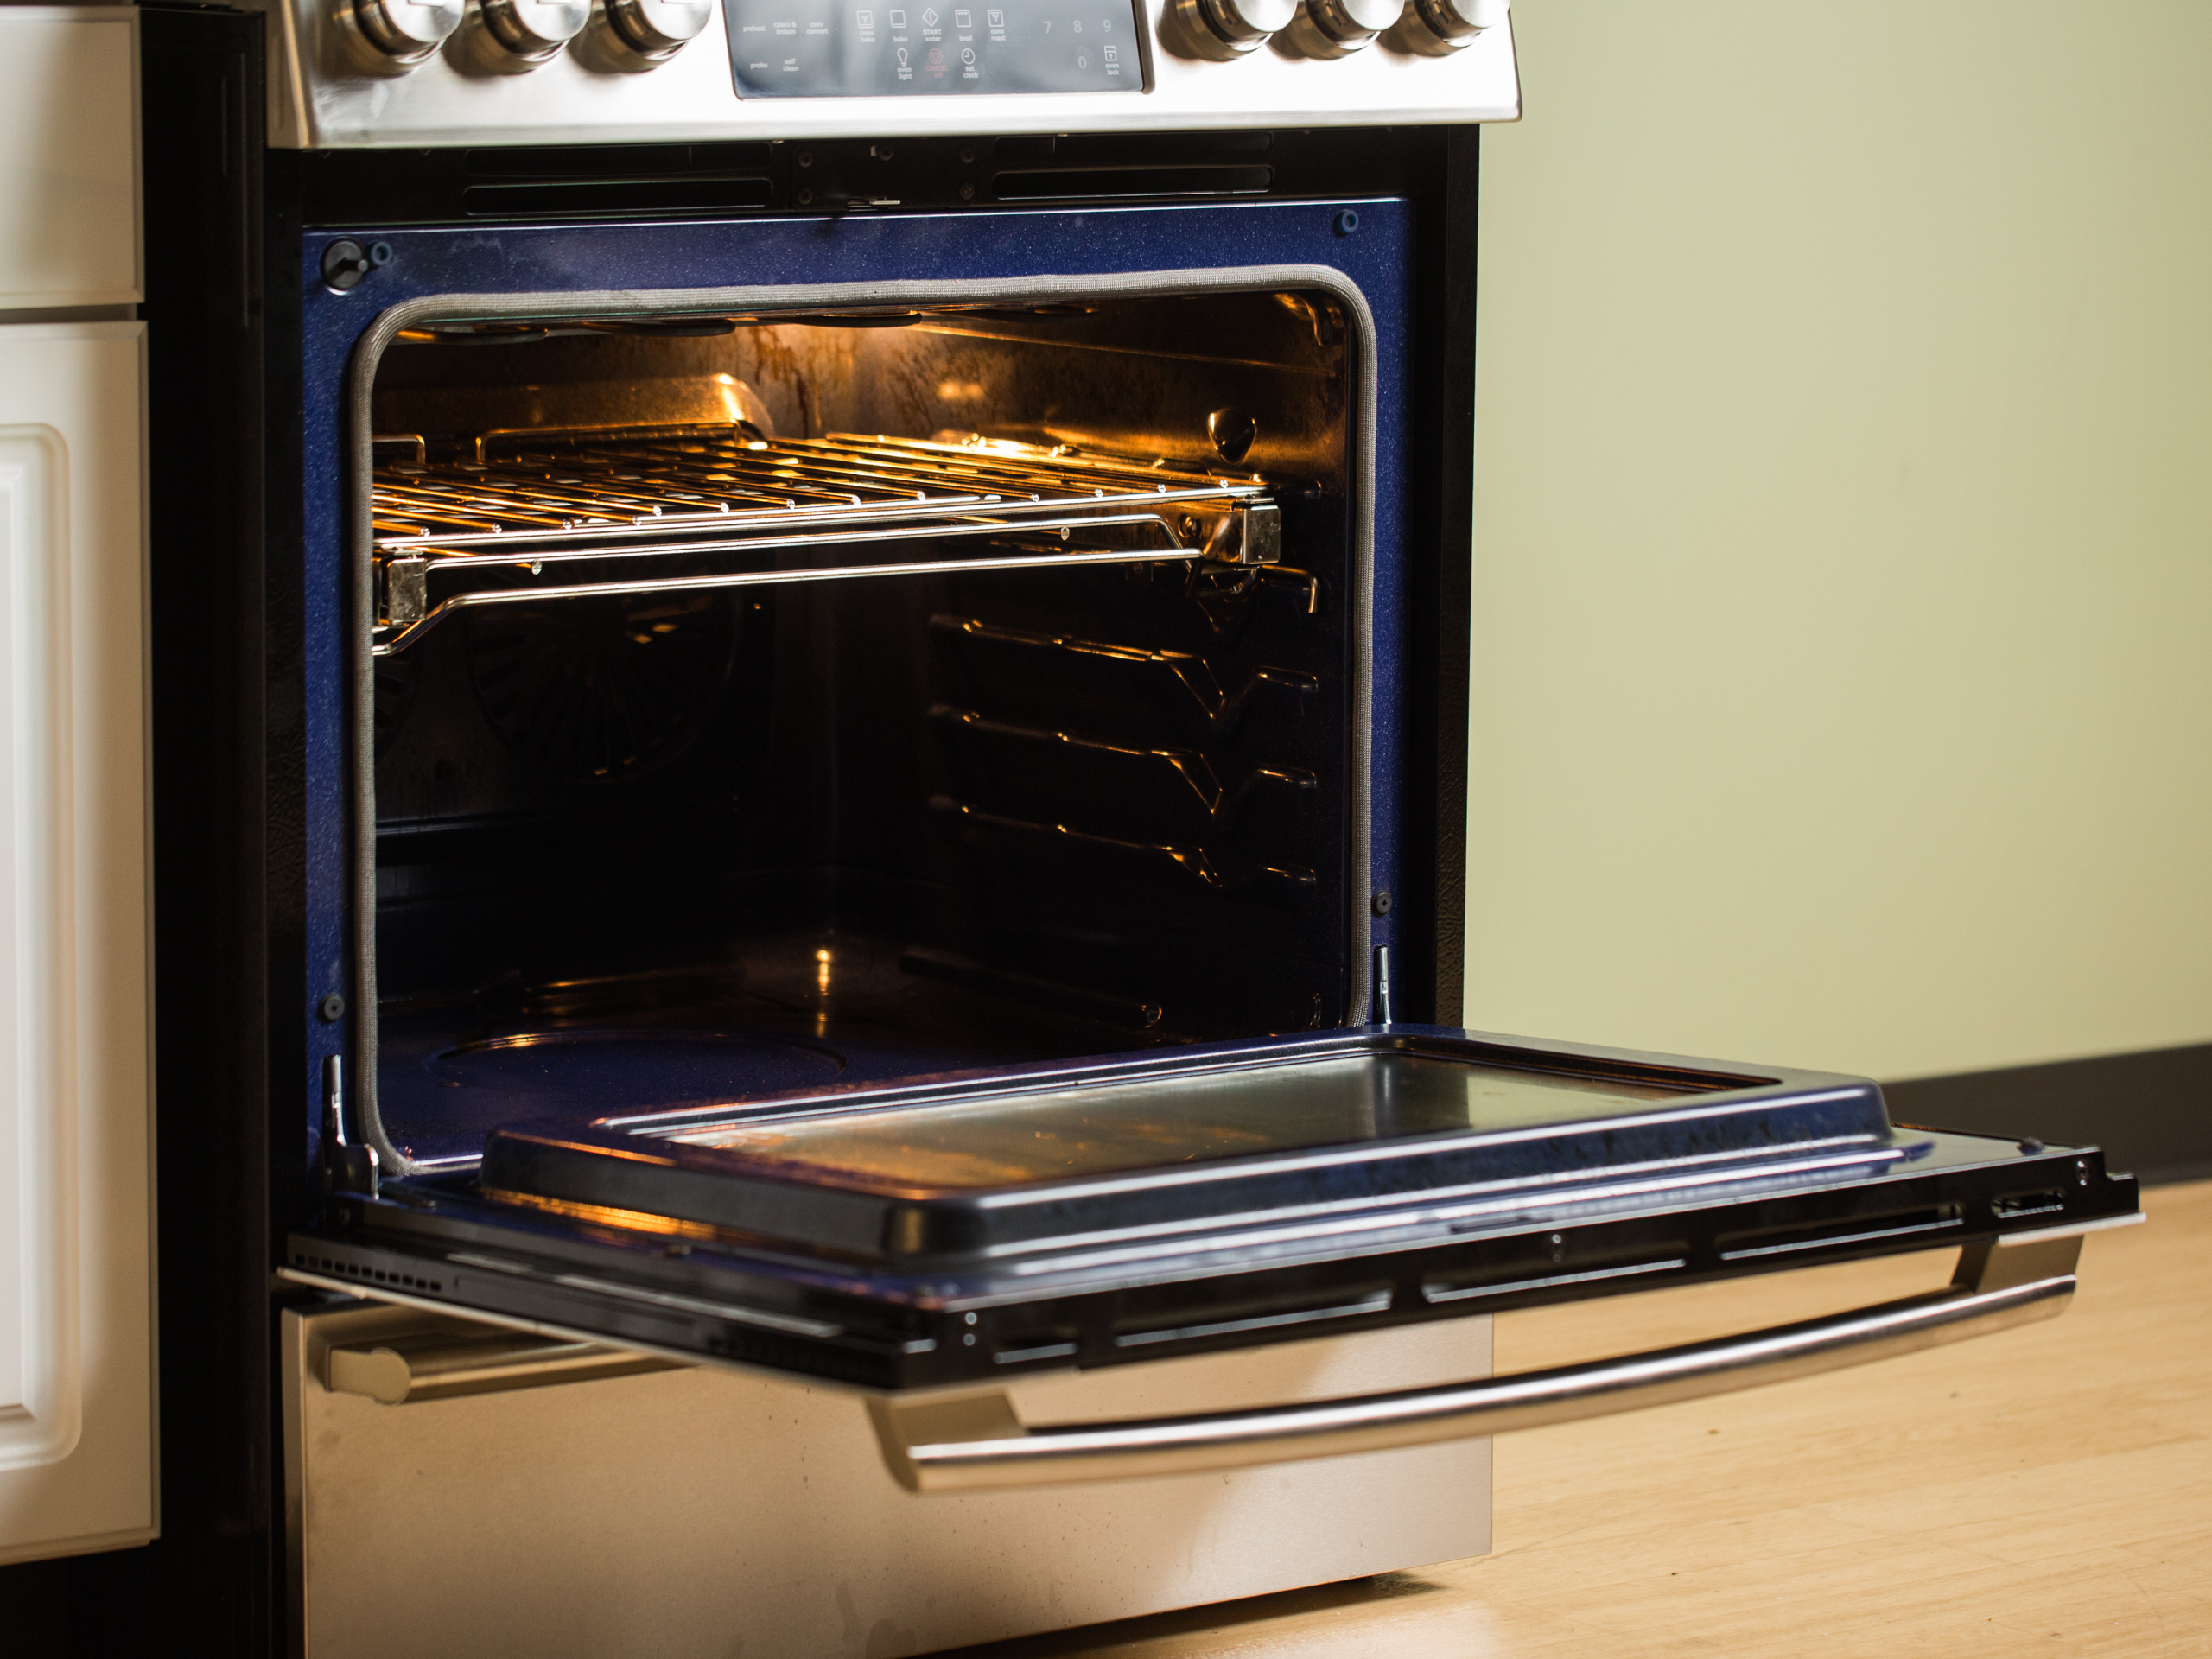 3 common oven problems and how to fix